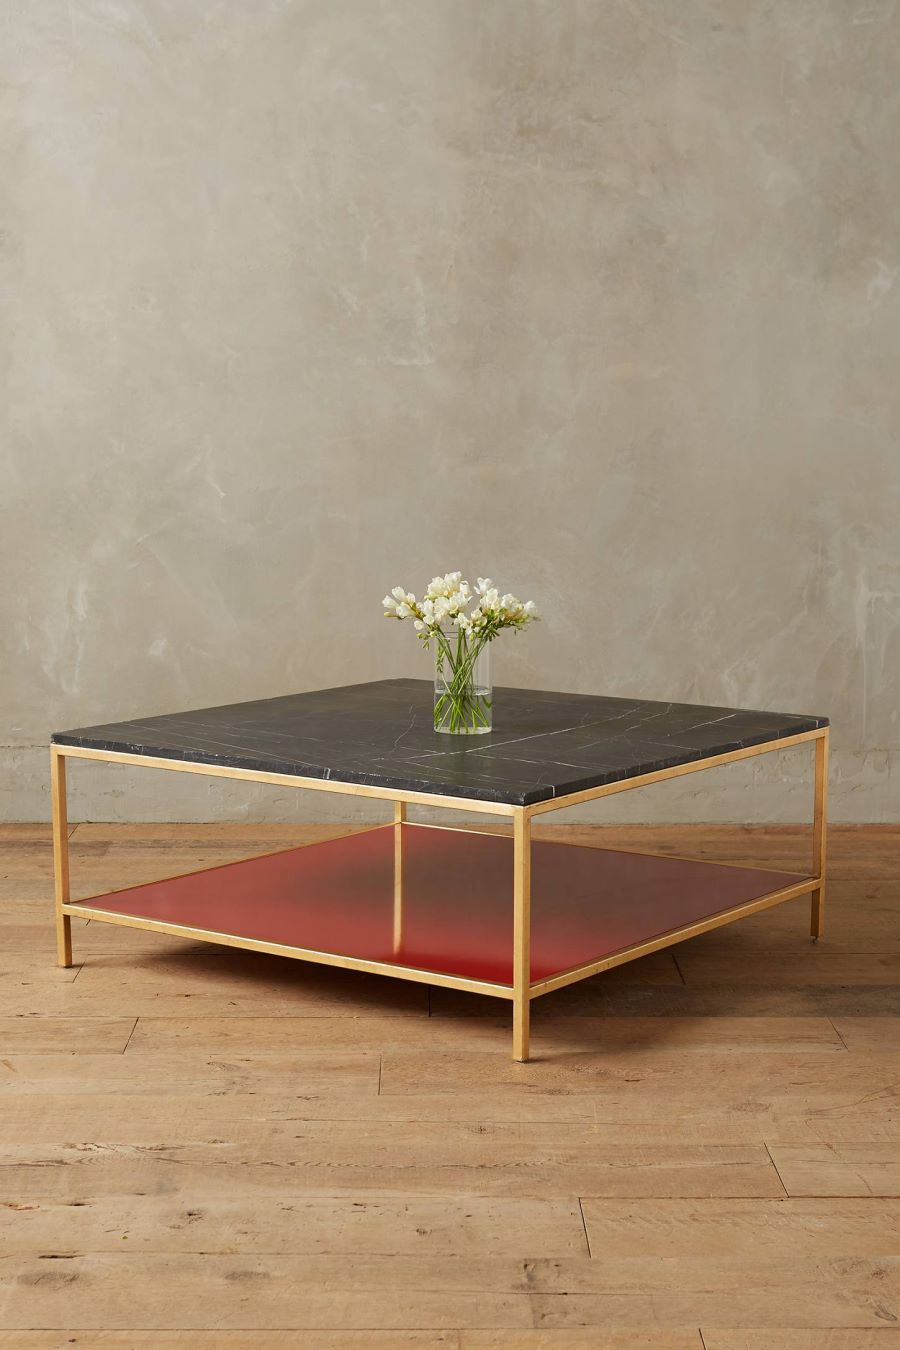 Marble coffee table from Anthropologie